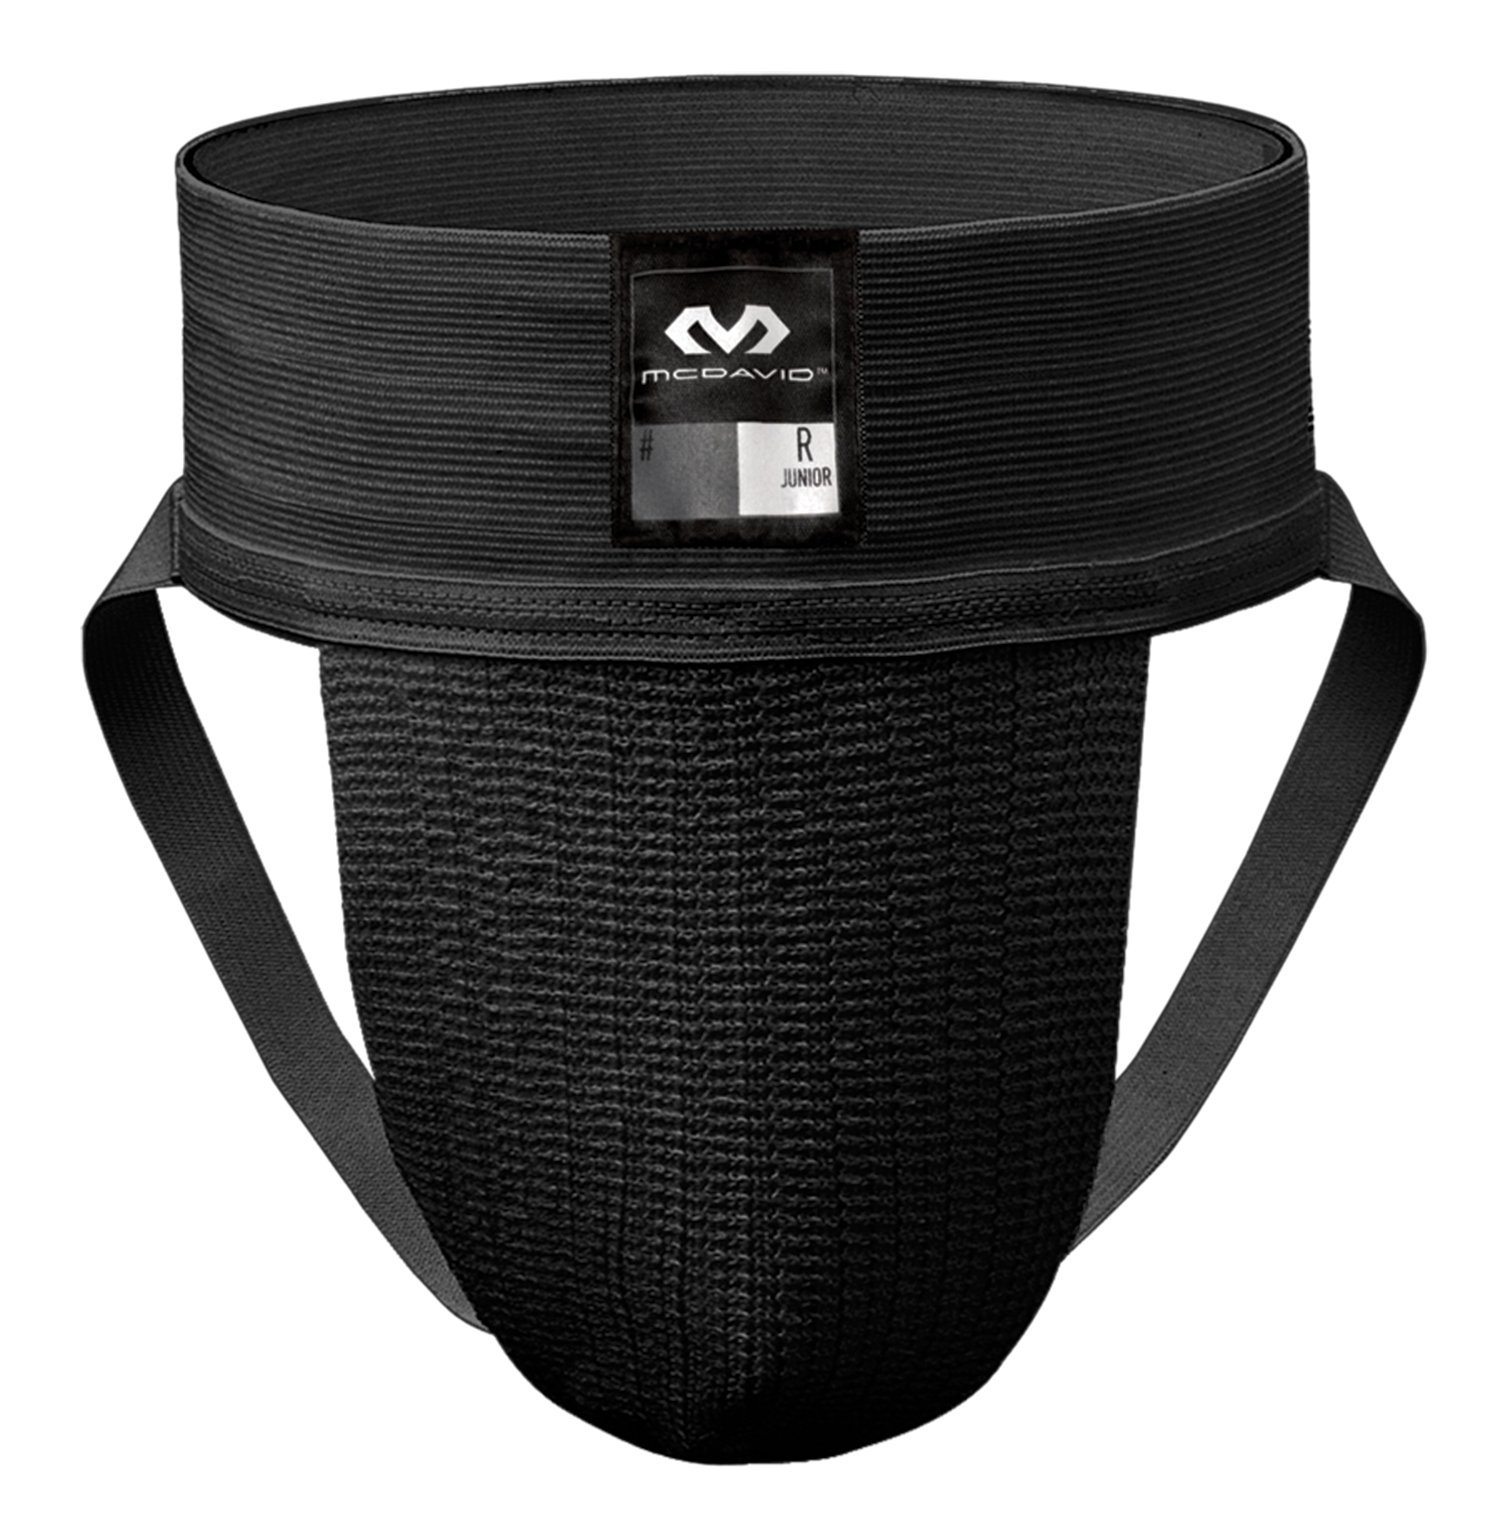 McDavid 3110 Classic Two Pack Athletic Supporter, Black, Large by McDavid